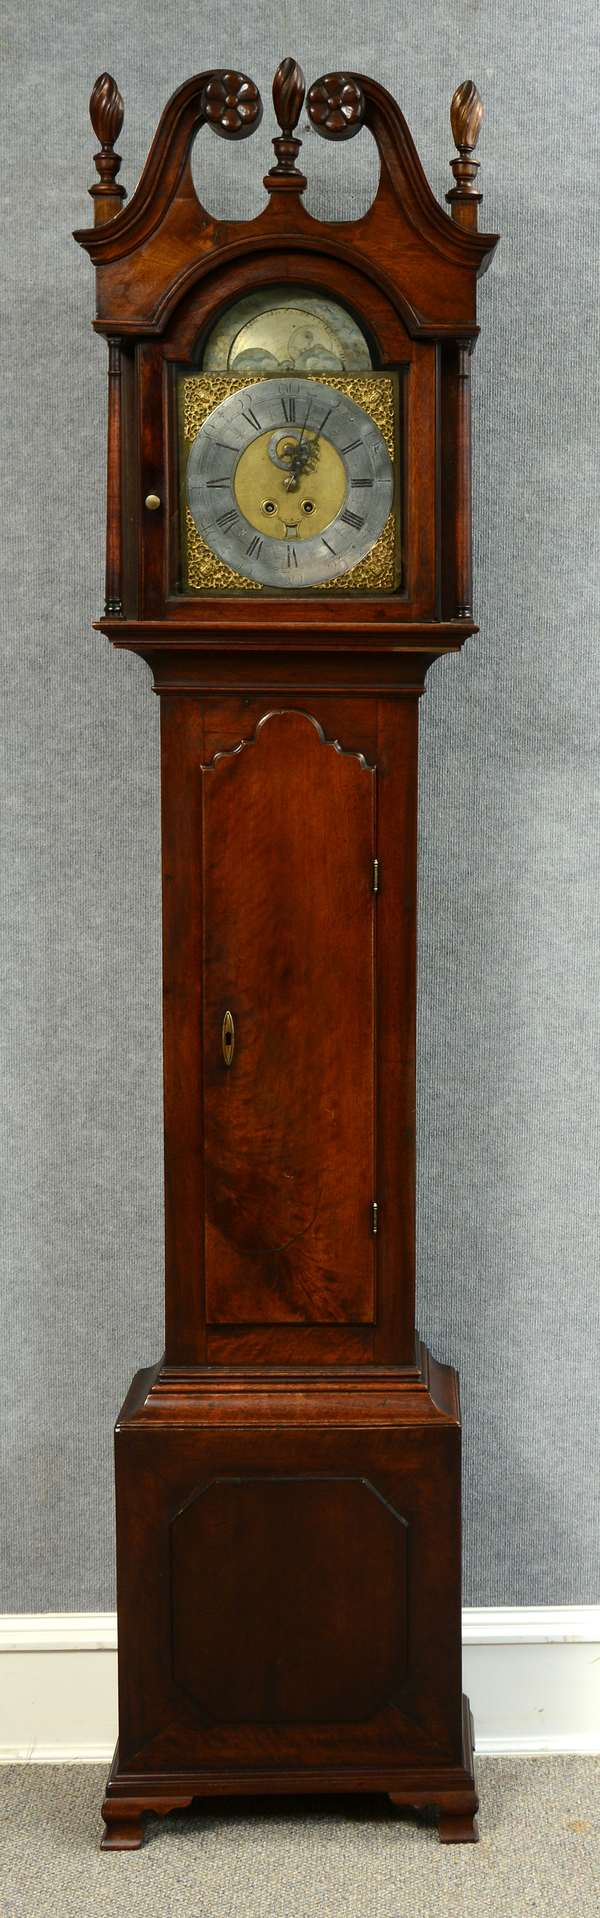 18th C. PA walnut Chippendale tall clock with carved broken arch crest on ogee bracket base, moon phase silvered & gilt dial, 93